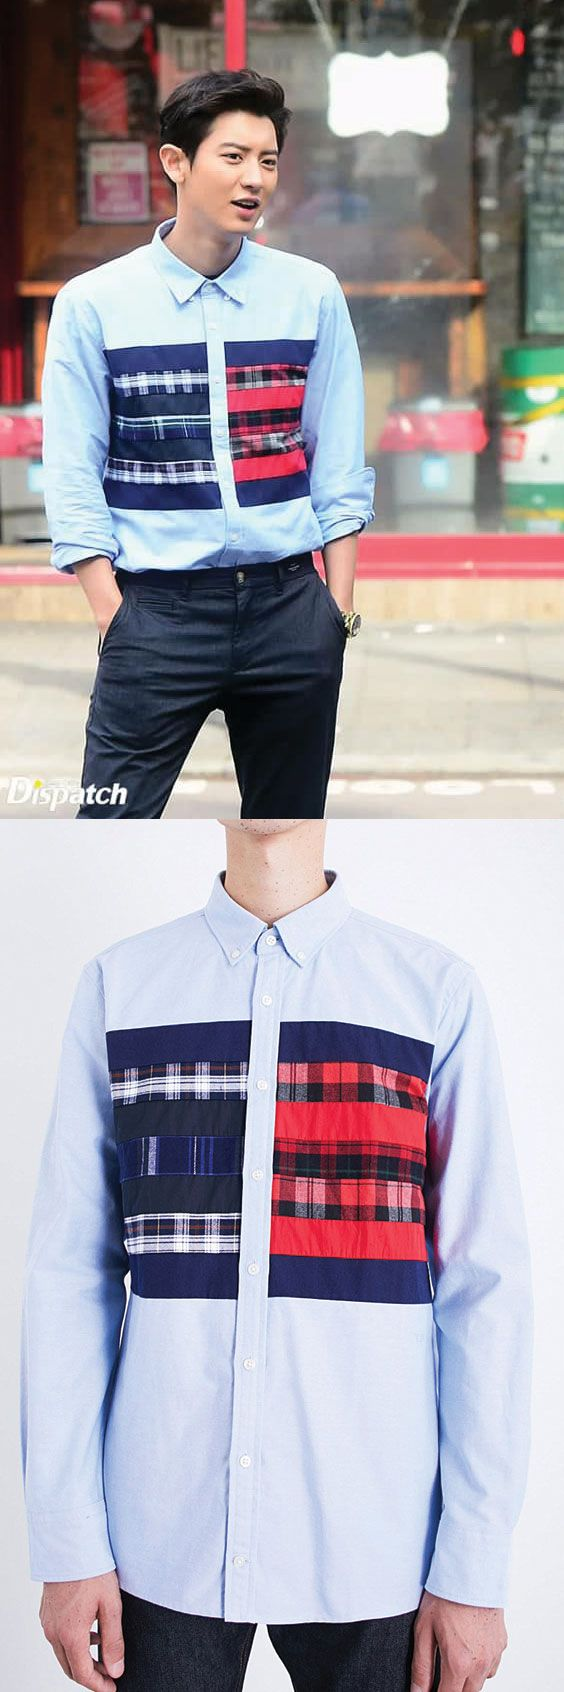 Chanyeol EXO on Tommy Hilfiger Hilfiger Editions regular-fit Flag Logo cotton Oxford shirt. Click here to get oxford like chanyeol exo #kpop #idol #exo #chanyeol